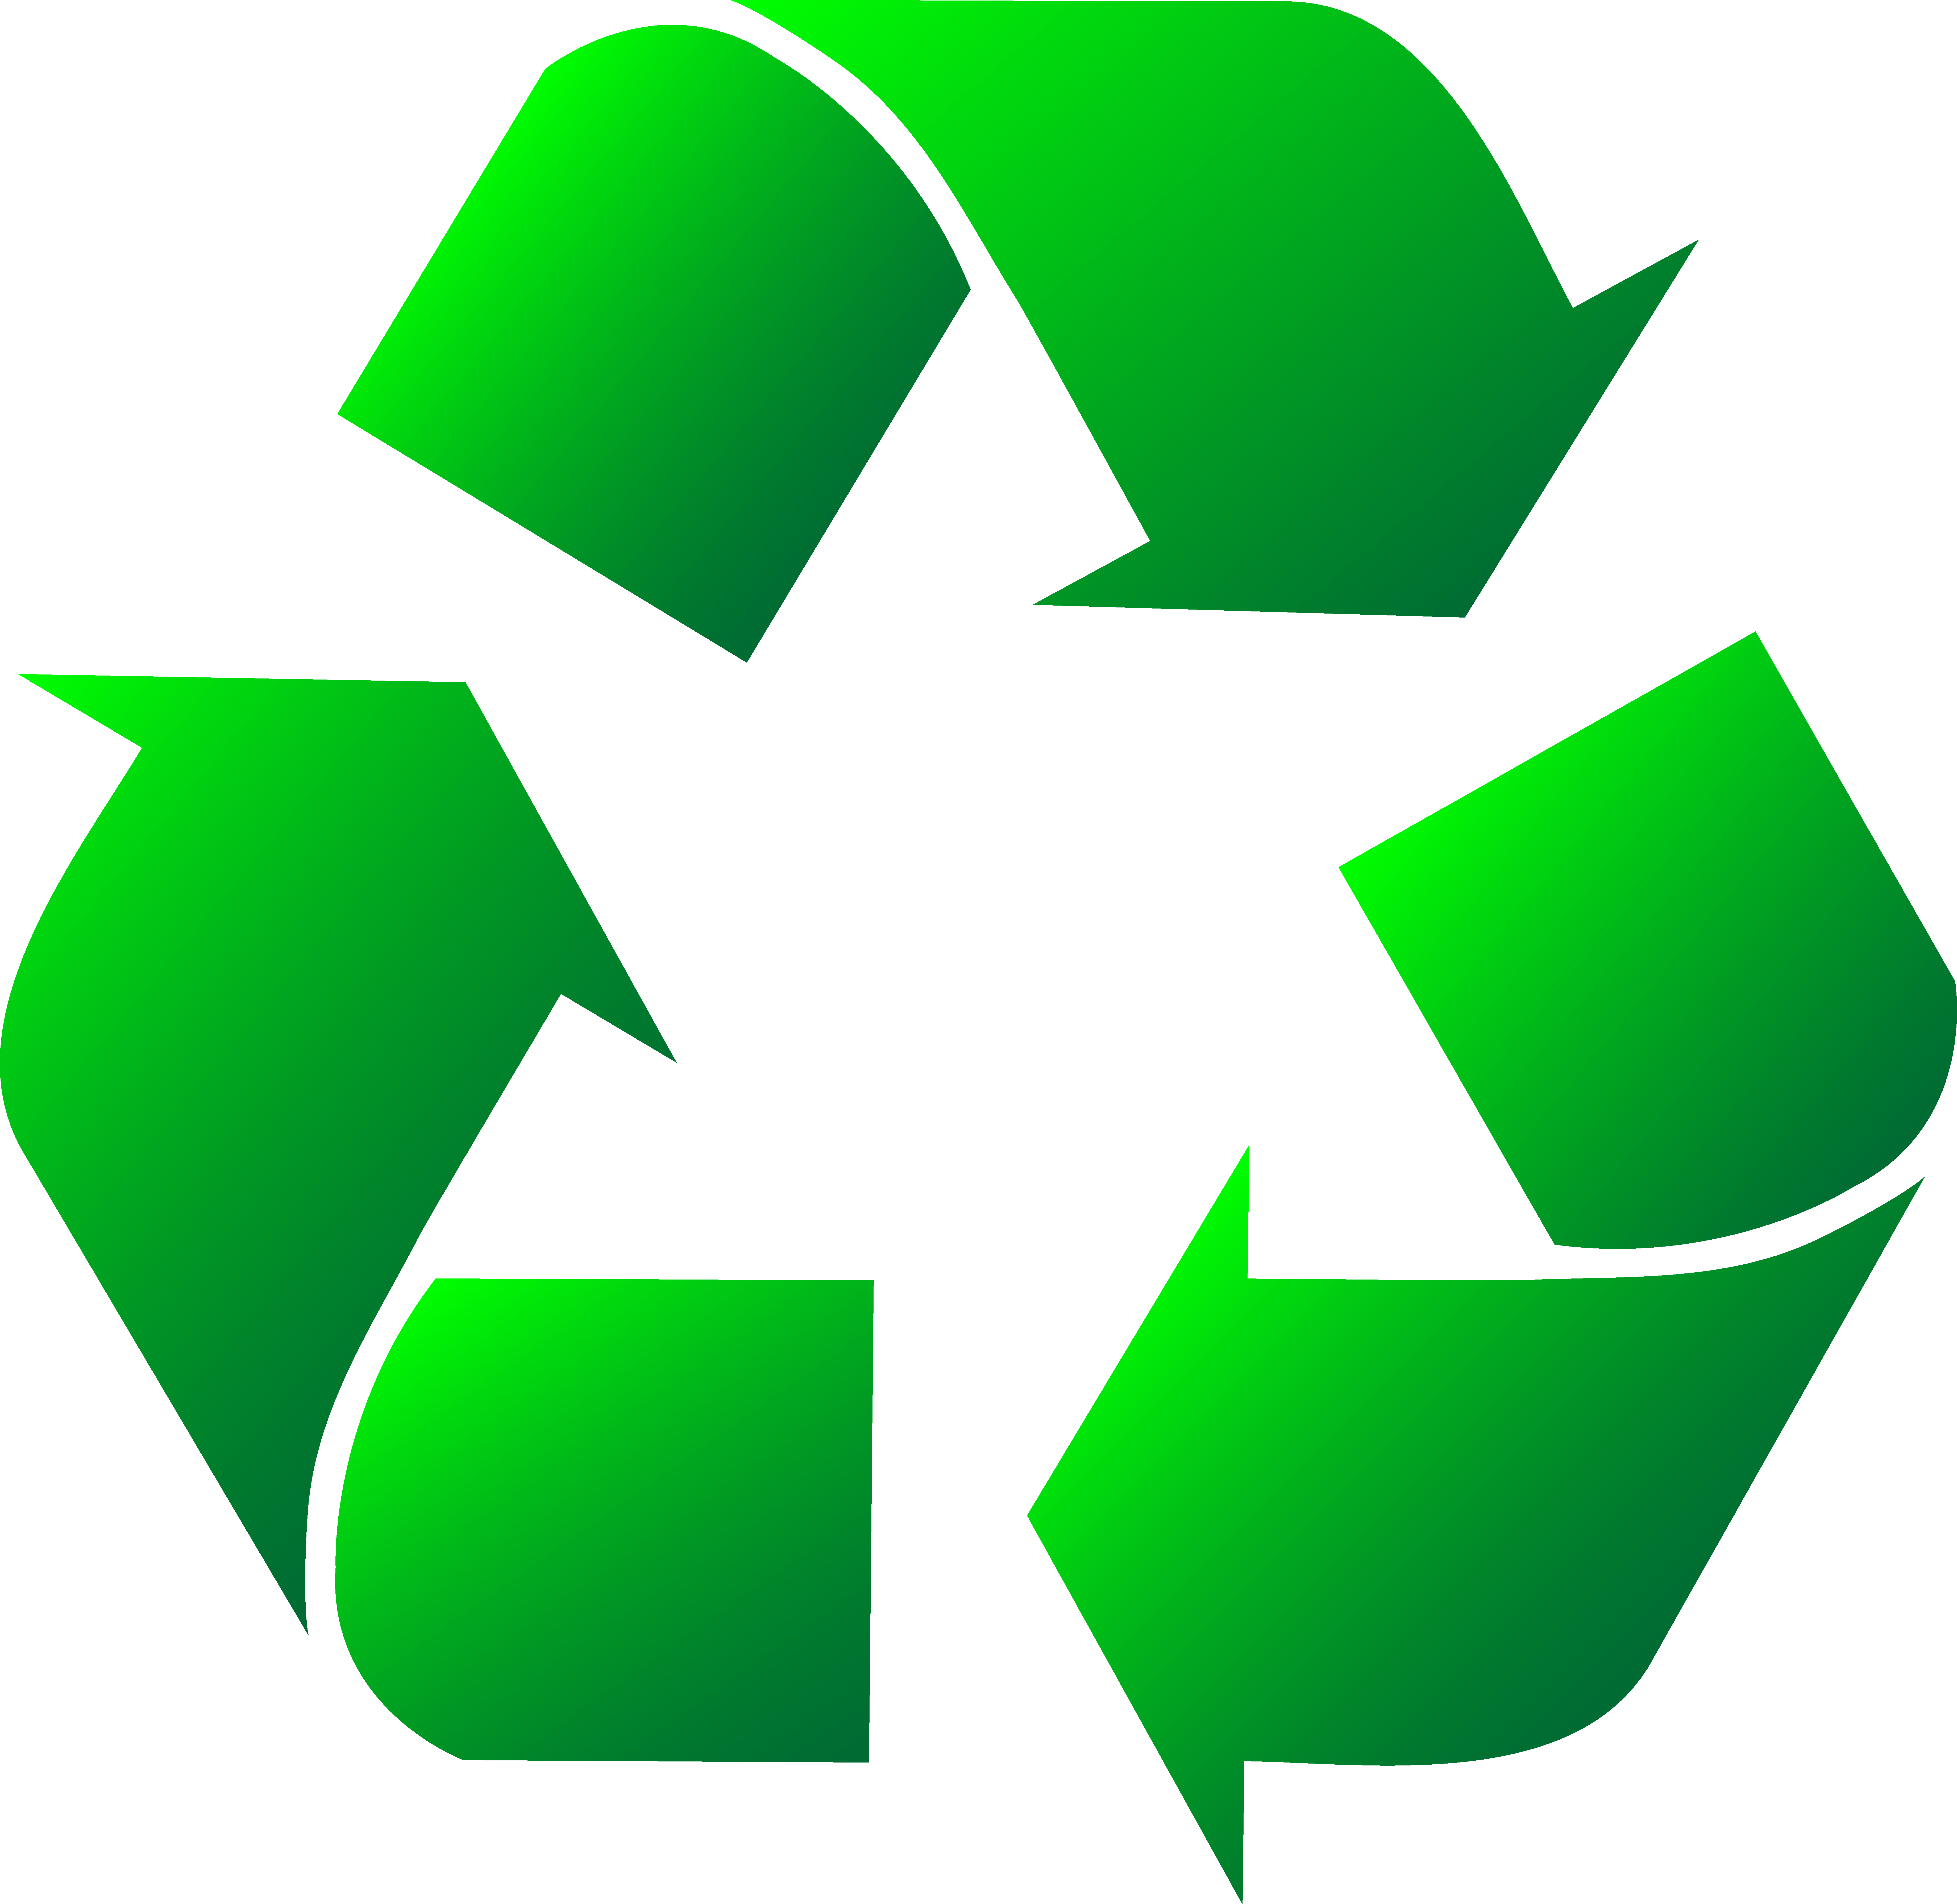 jpg library Recycle clipart. Green symbol clip art.